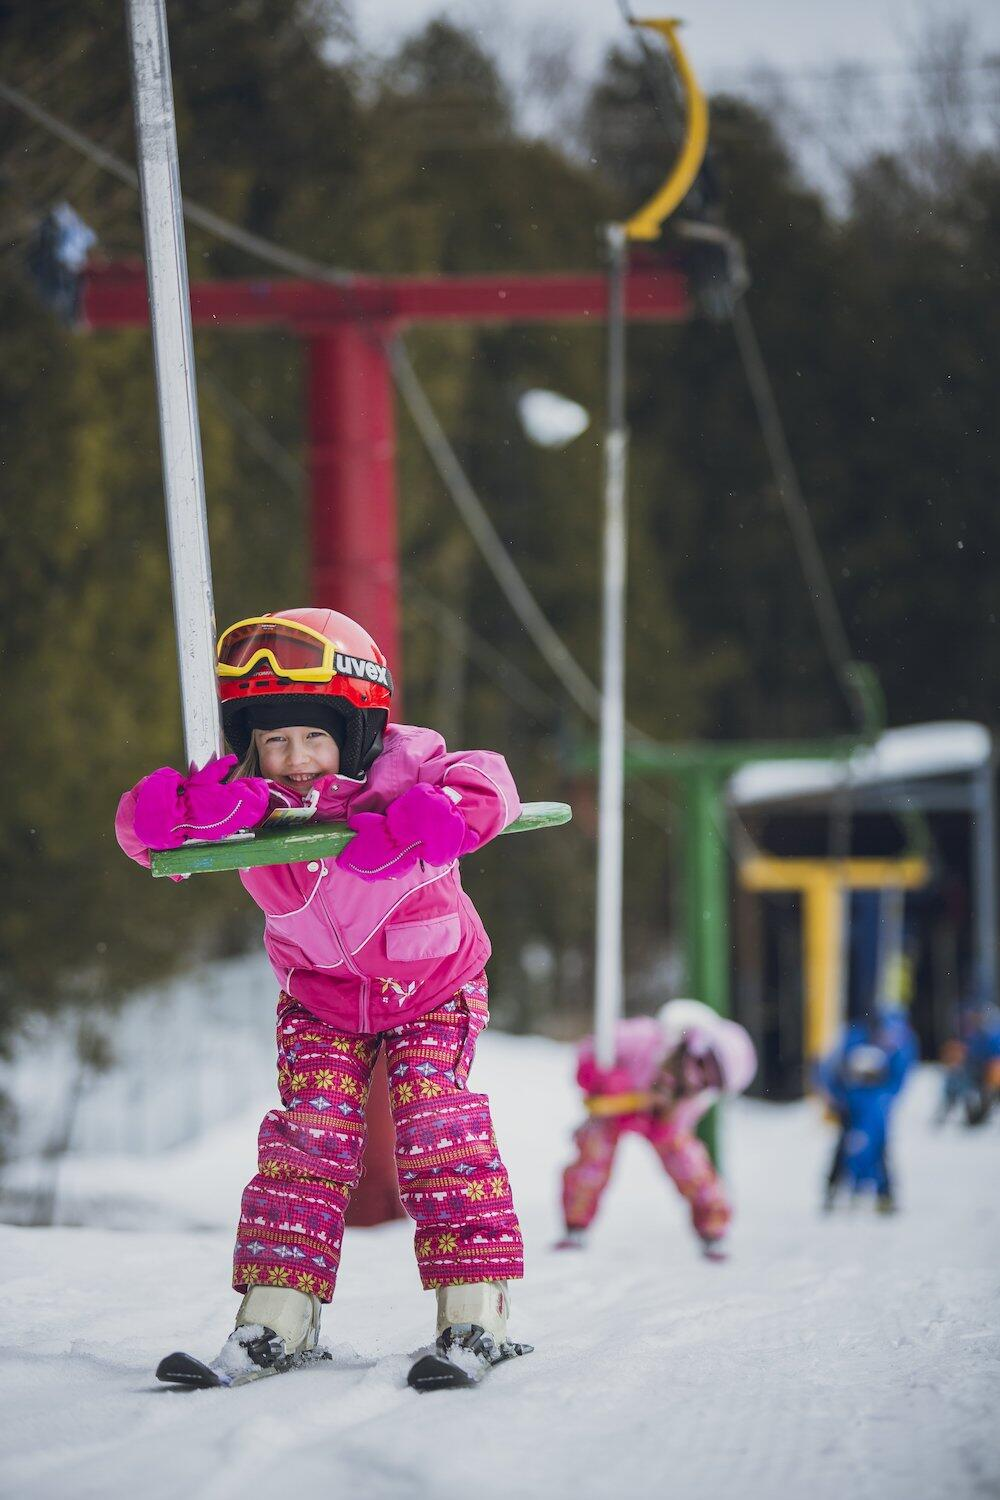 A little girl on skis riding a T-bar.